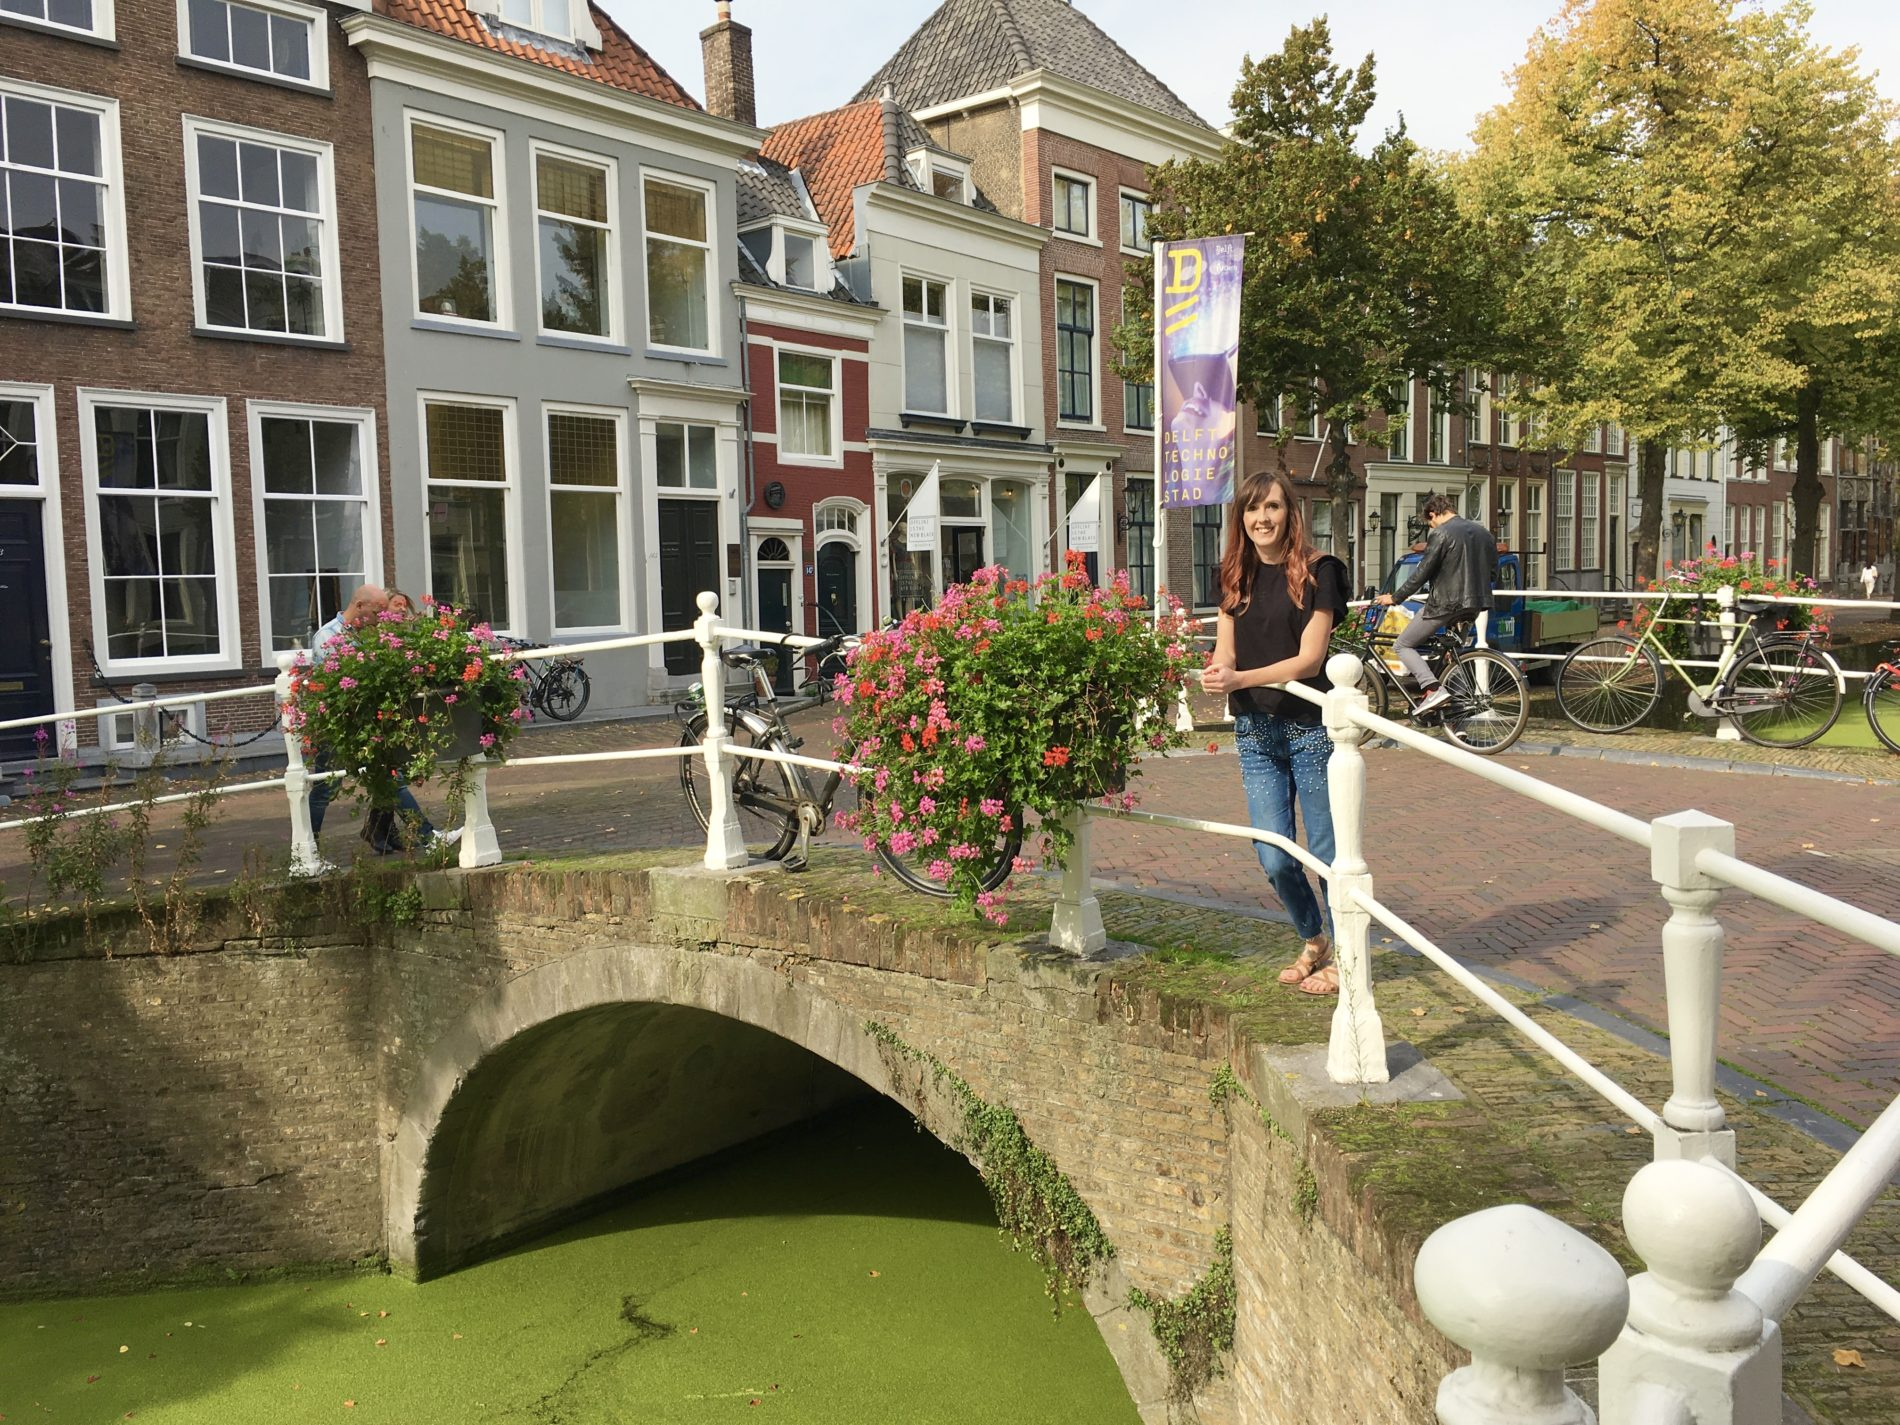 Choosing Delft over Amsterdam - a good call?